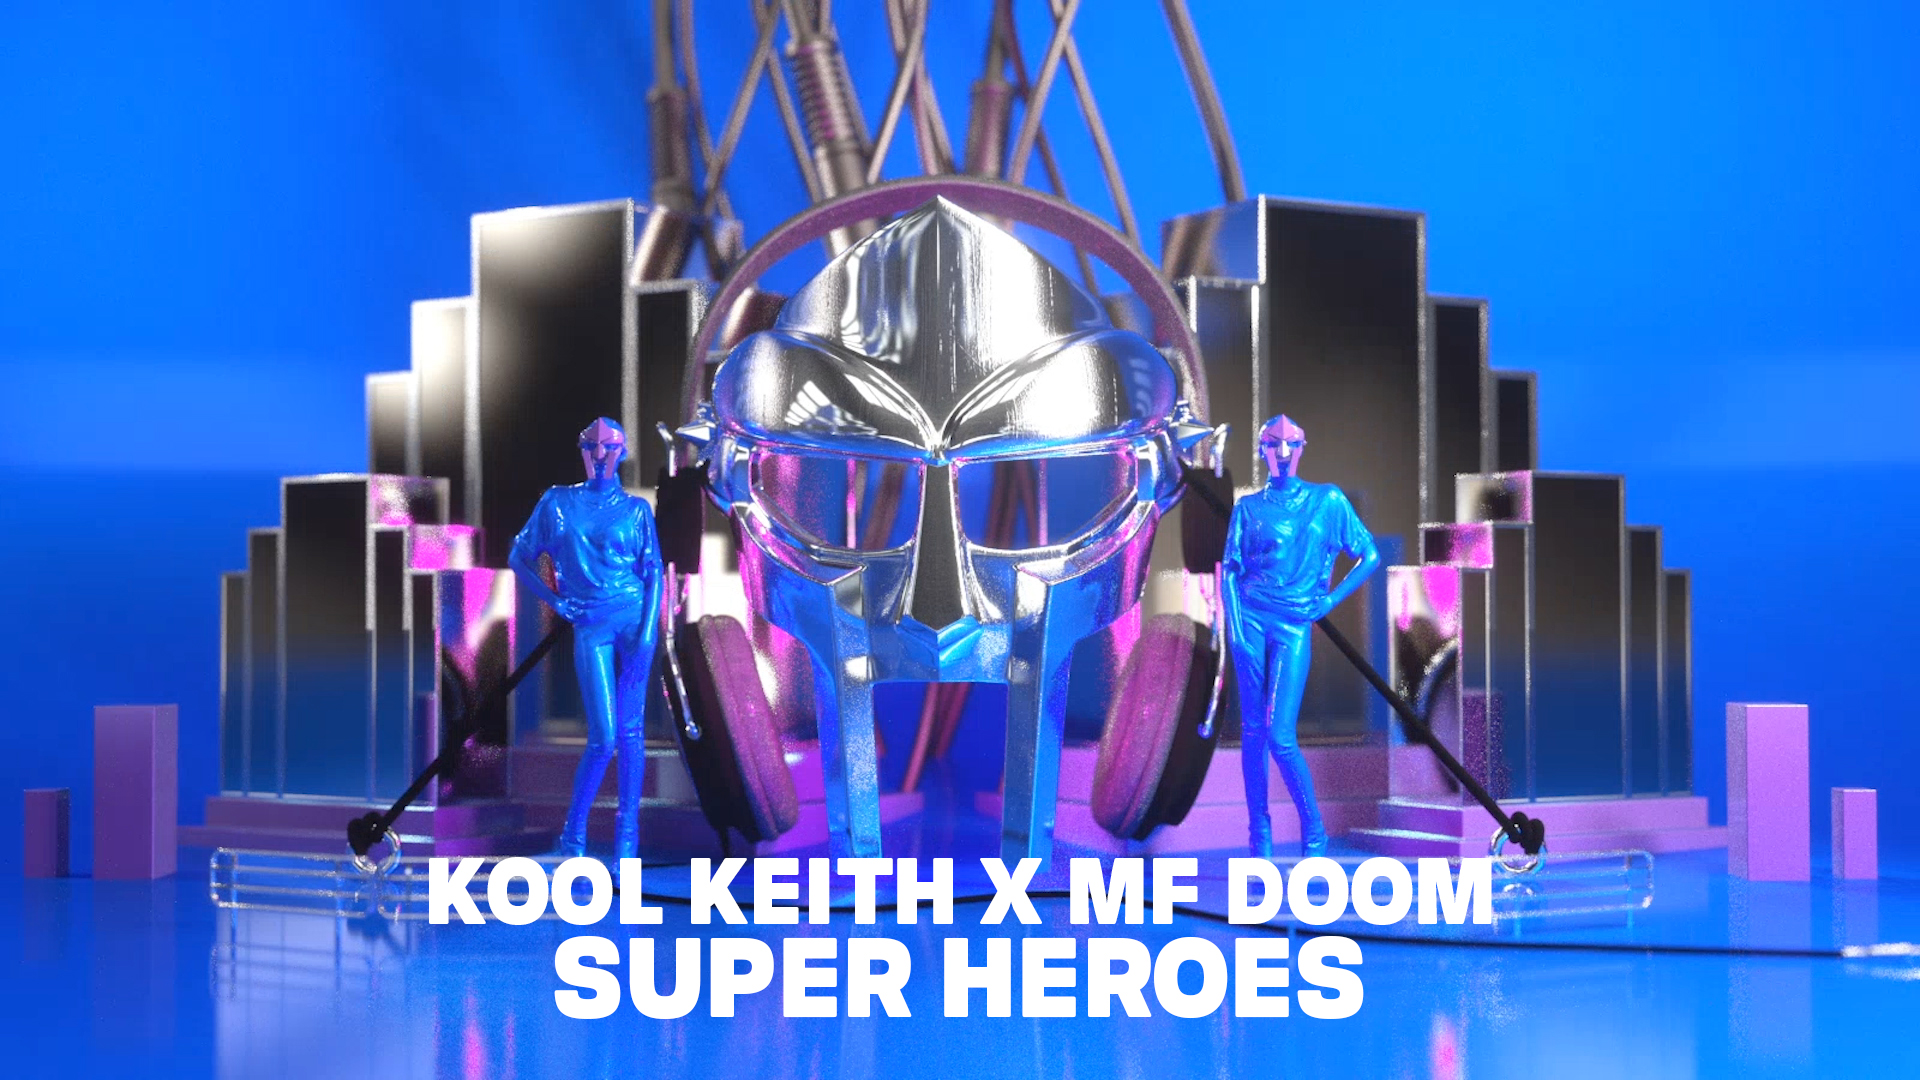 koolkiethxmfdoom_superheroes_cover